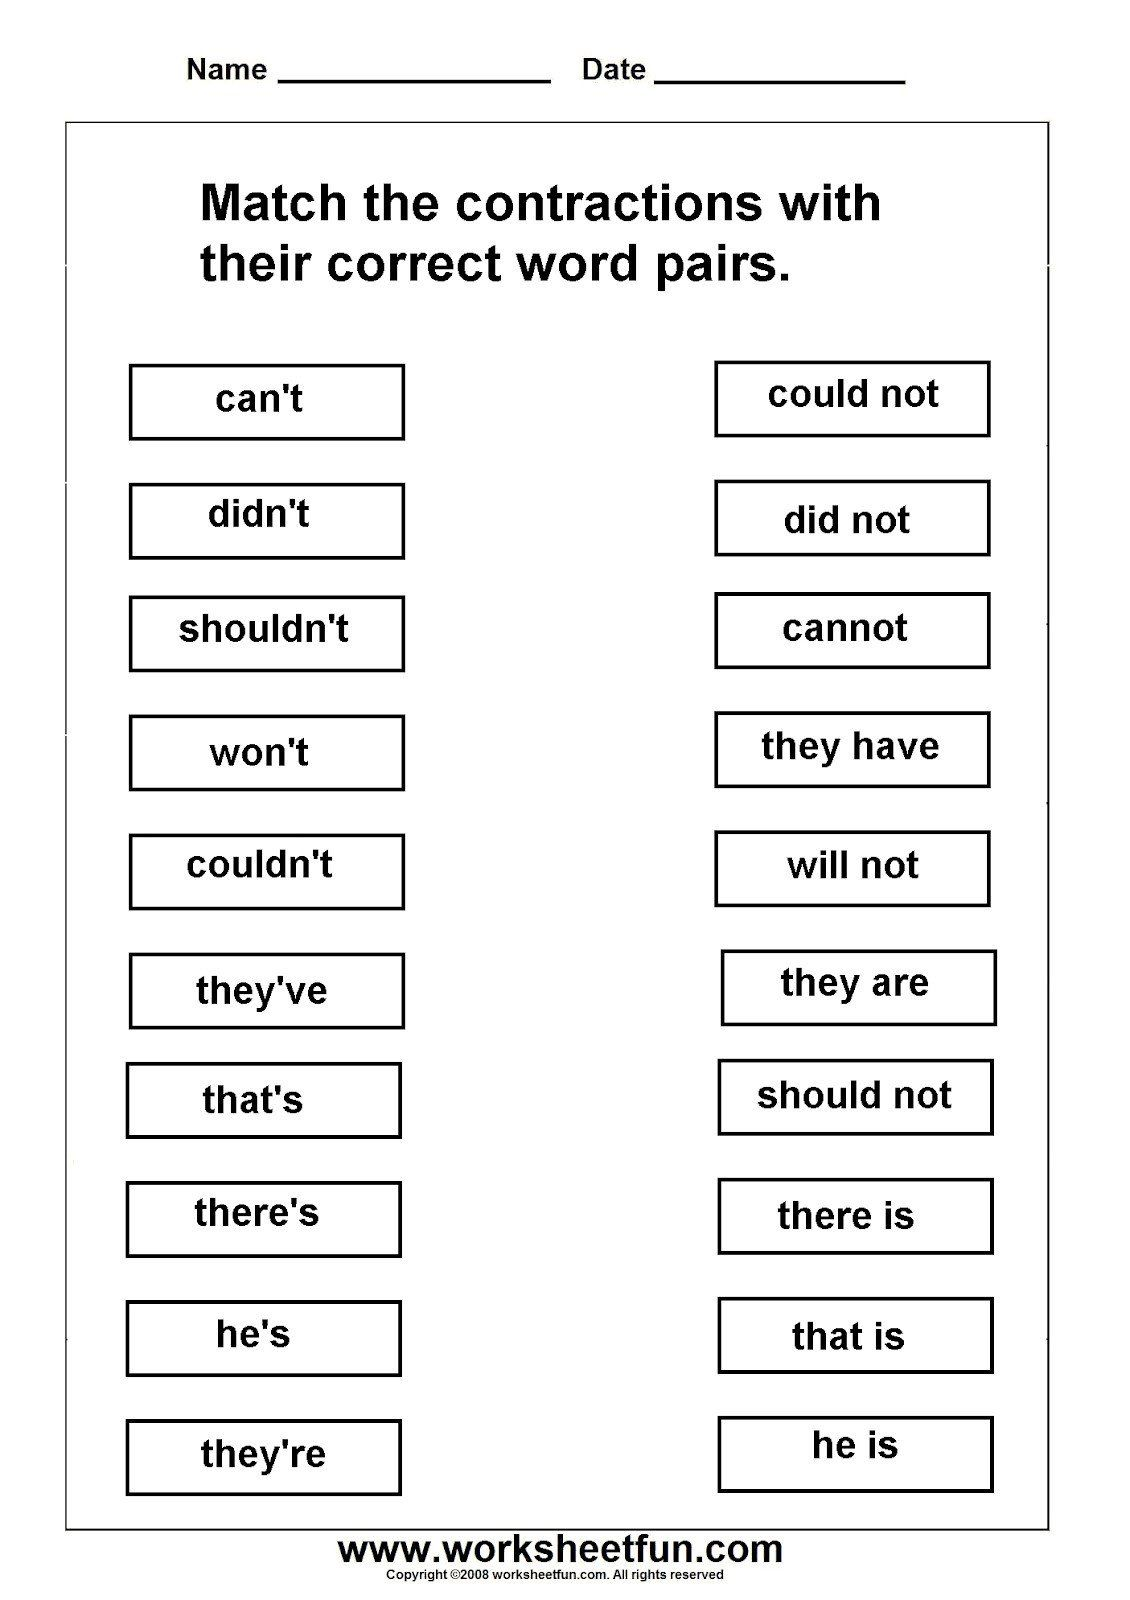 medium resolution of Contractions Worksheets Free 5th Grade   Printable Worksheets and  Activities for Teachers